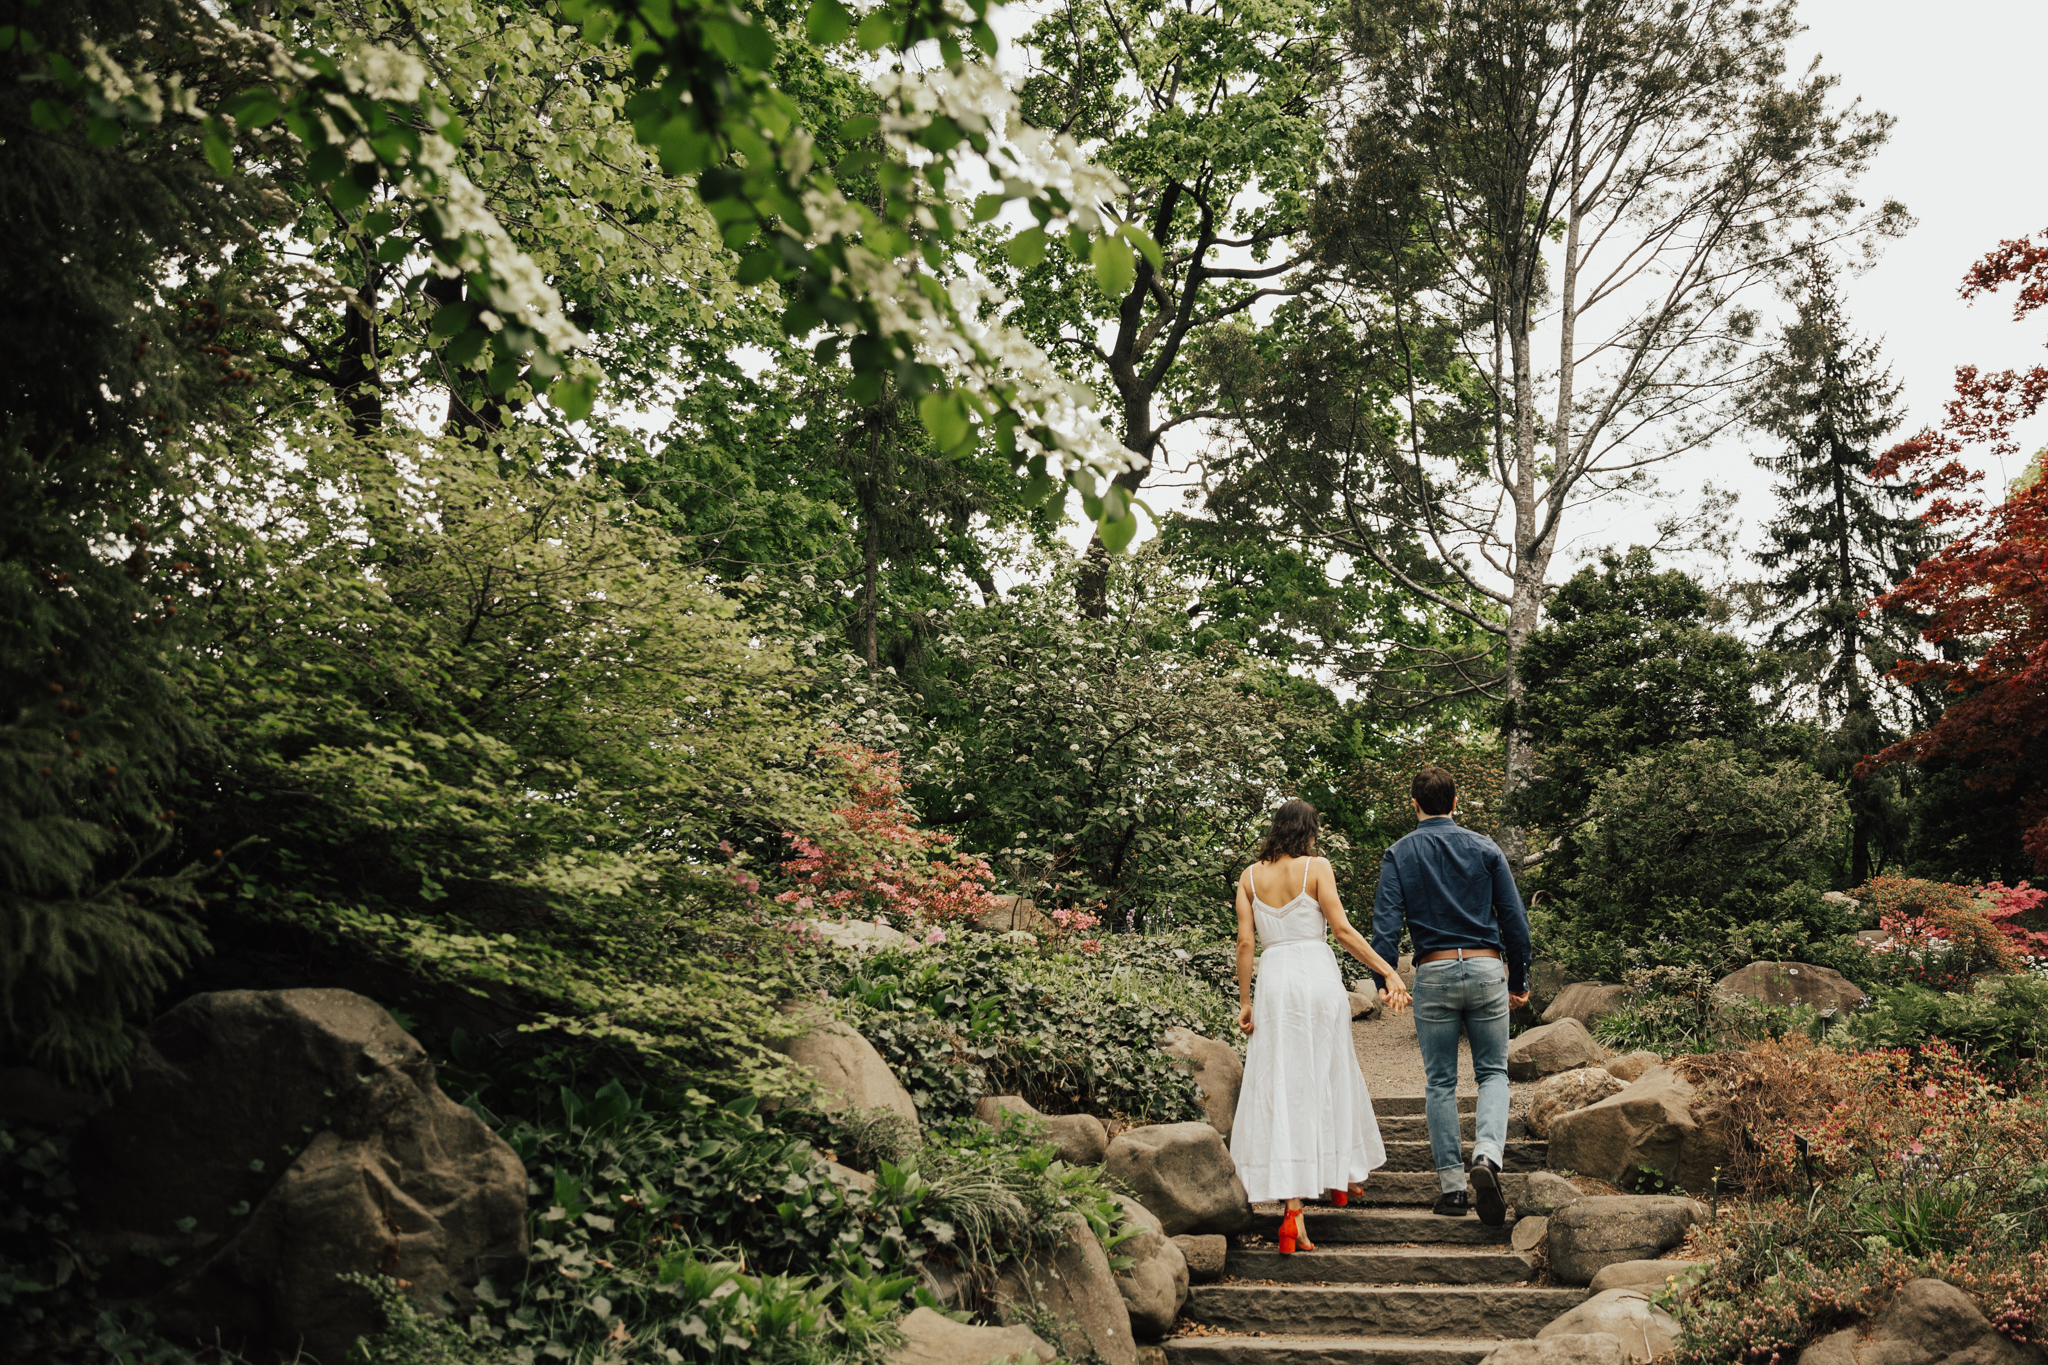 New York Romantic wedding photography